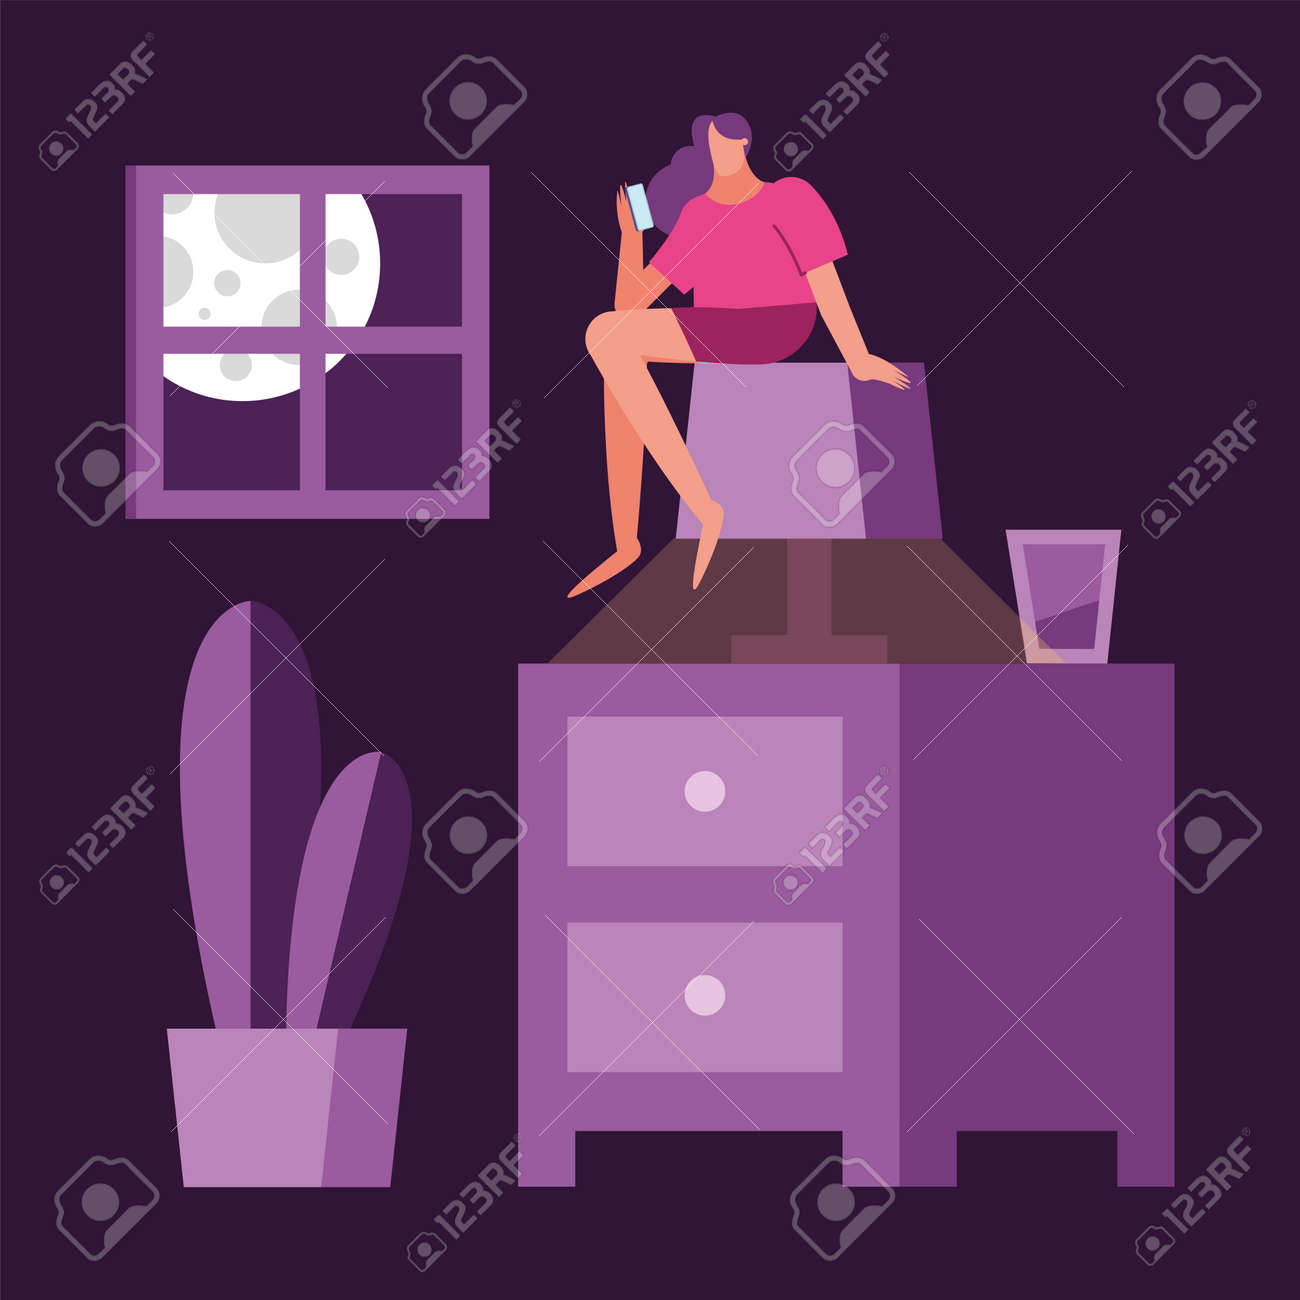 woman using smartphone seated in lamp suffering from insomnia vector illustration design - 158295496